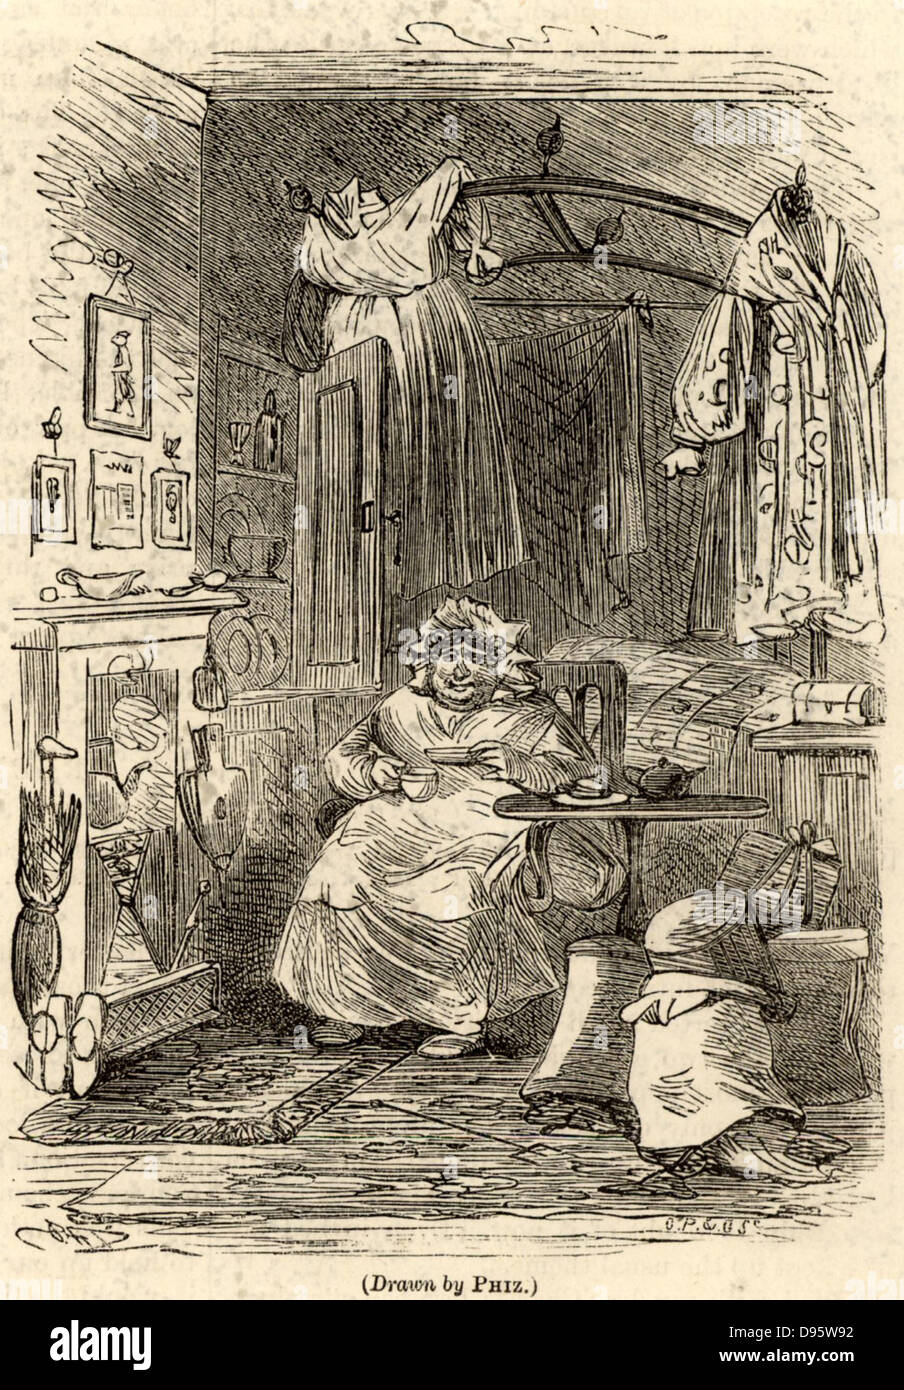 dickens character stock photos dickens character stock images sarah gamp a character from the novel martin chuzzlelwit by charles dickens